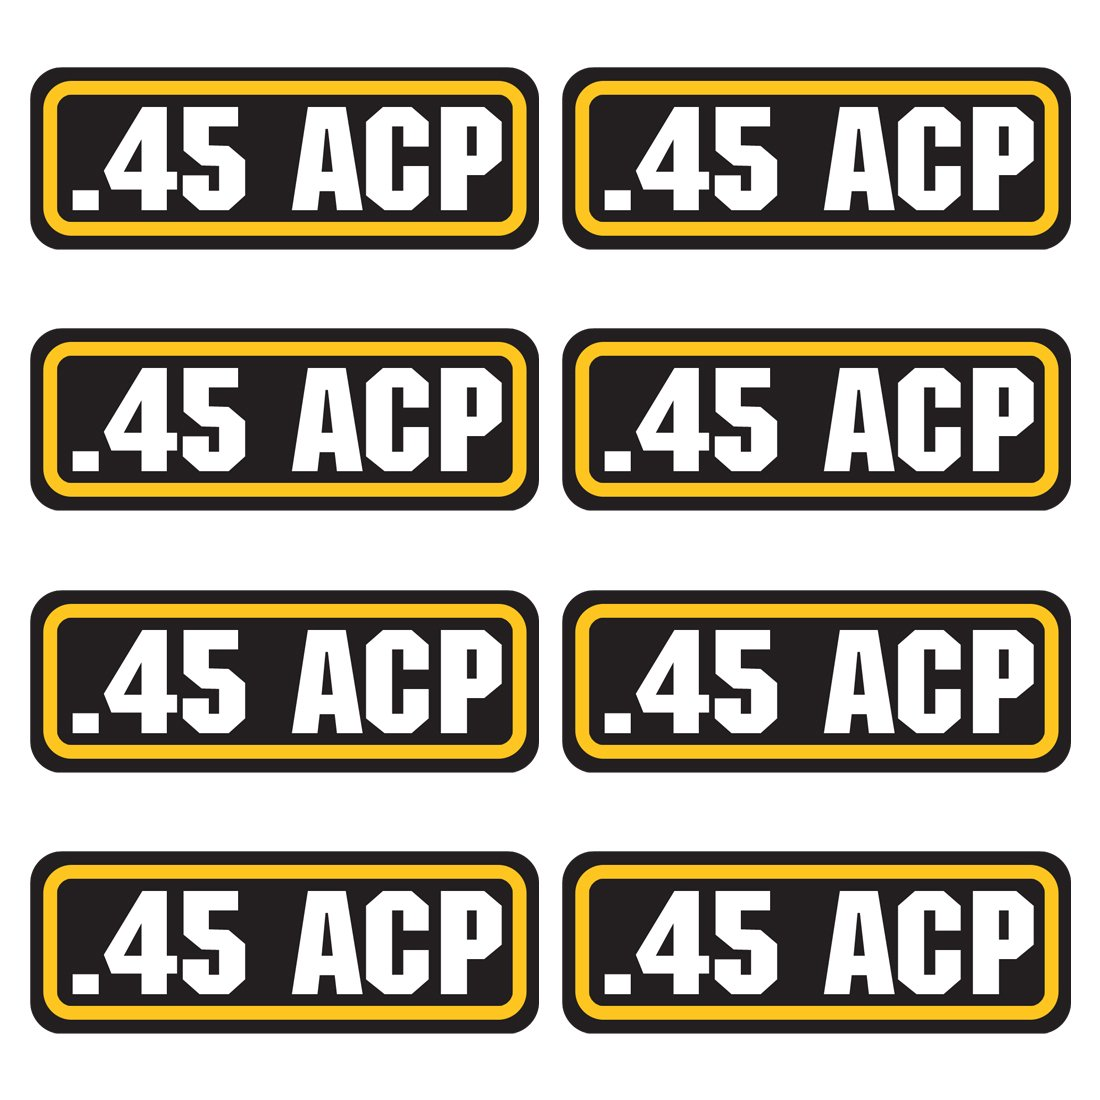 45 ACP ammo sticker 8 PACK - LAMINATED Can Box Vinyl Decal bullet ARMY Gun safety Hunting label